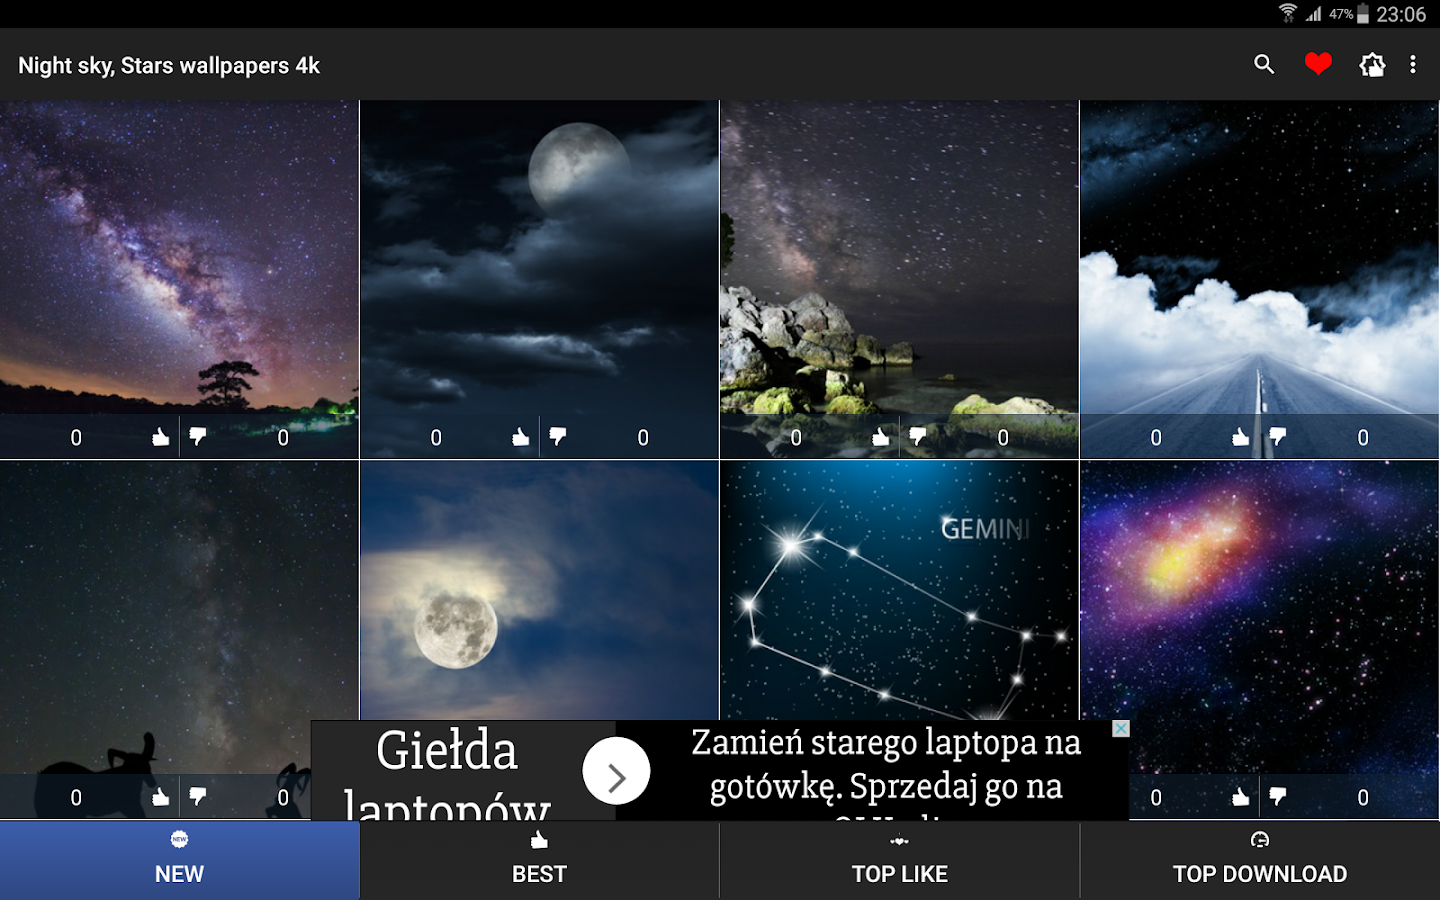 Night sky stars wallpapers 4k android apps on google play for Night sky wallpaper 4k